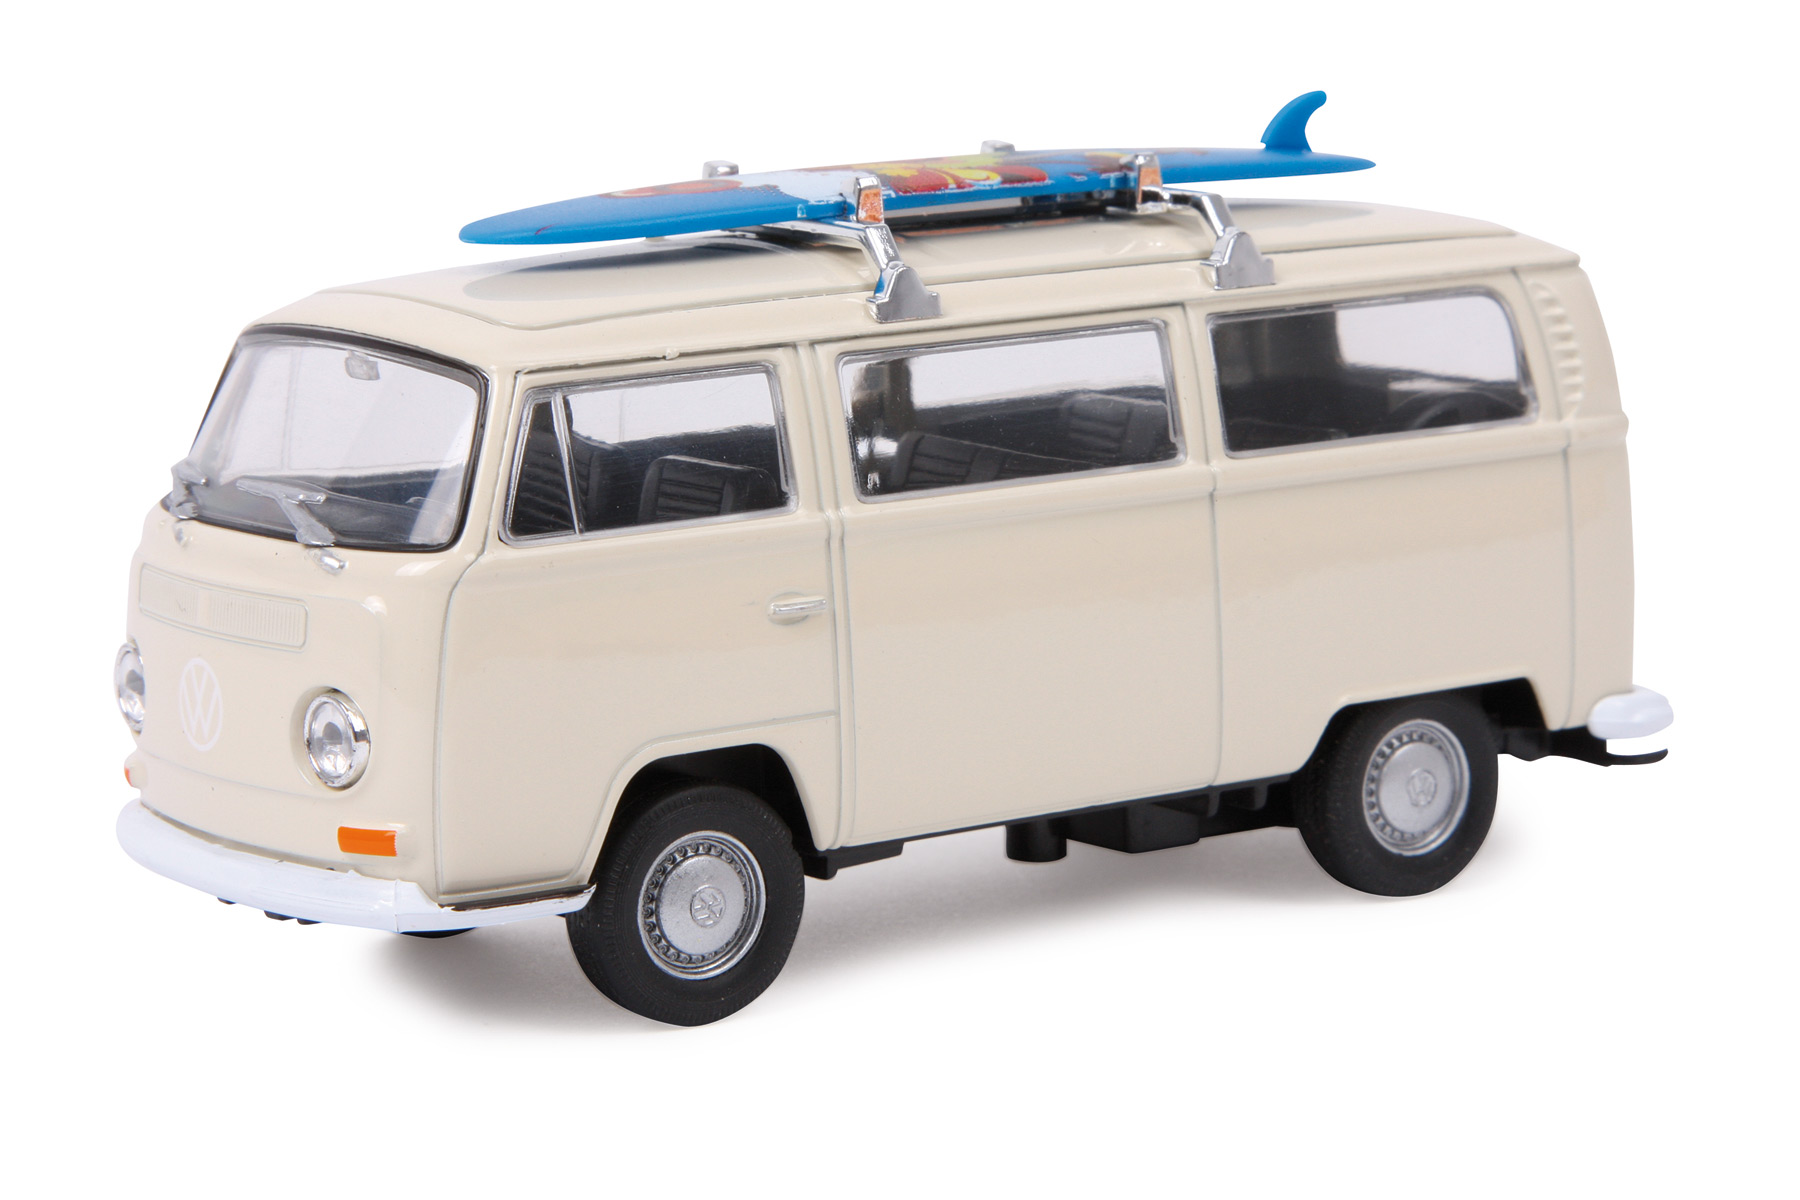 automodello vw bus t2 tavola da surf. Black Bedroom Furniture Sets. Home Design Ideas